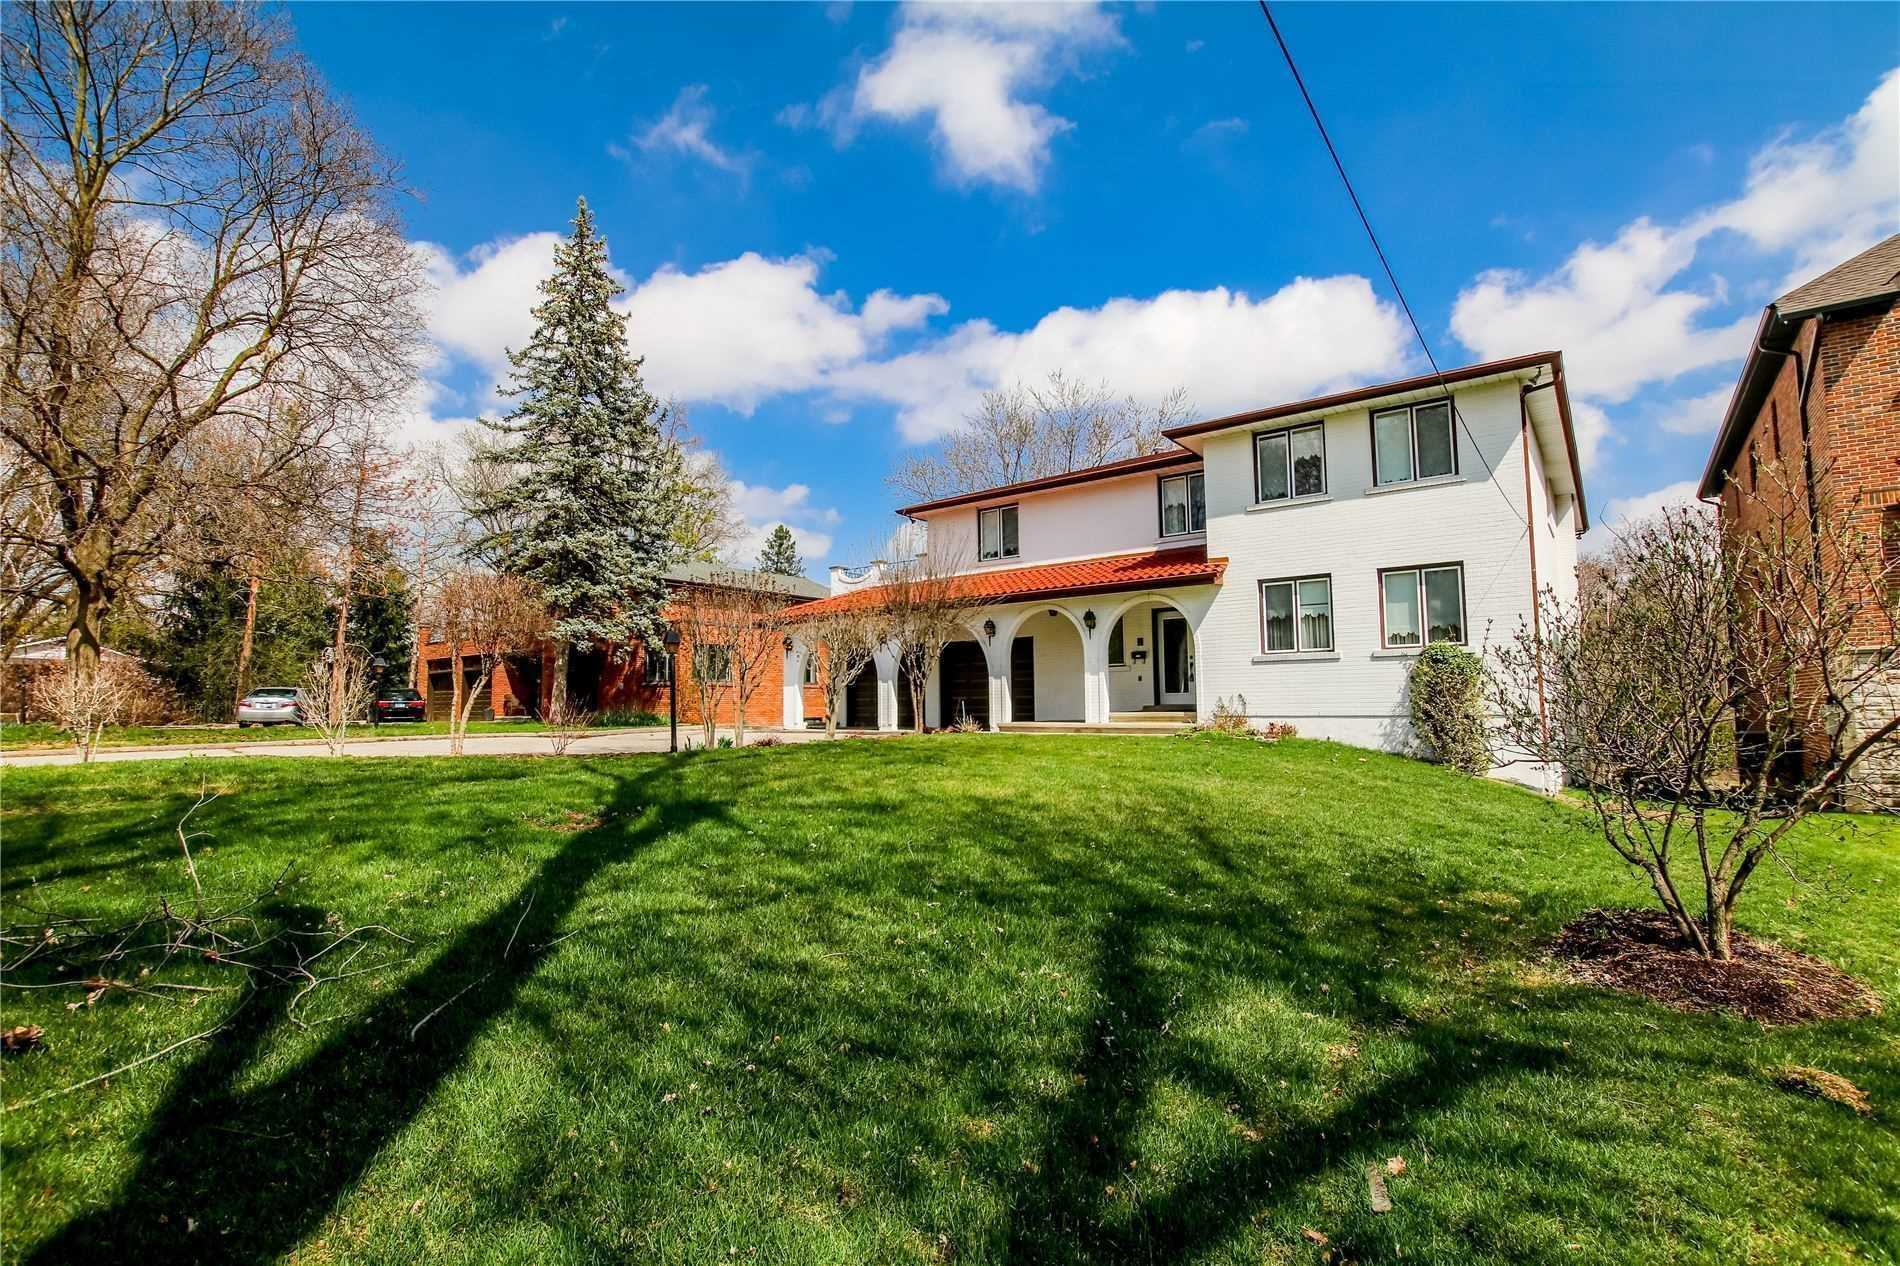 Detached house For Lease In Vaughan - 8487 Islington Ave, Vaughan, Ontario, Canada L4L1X3 , 5 Bedrooms Bedrooms, ,4 BathroomsBathrooms,Detached,For Lease,Islington